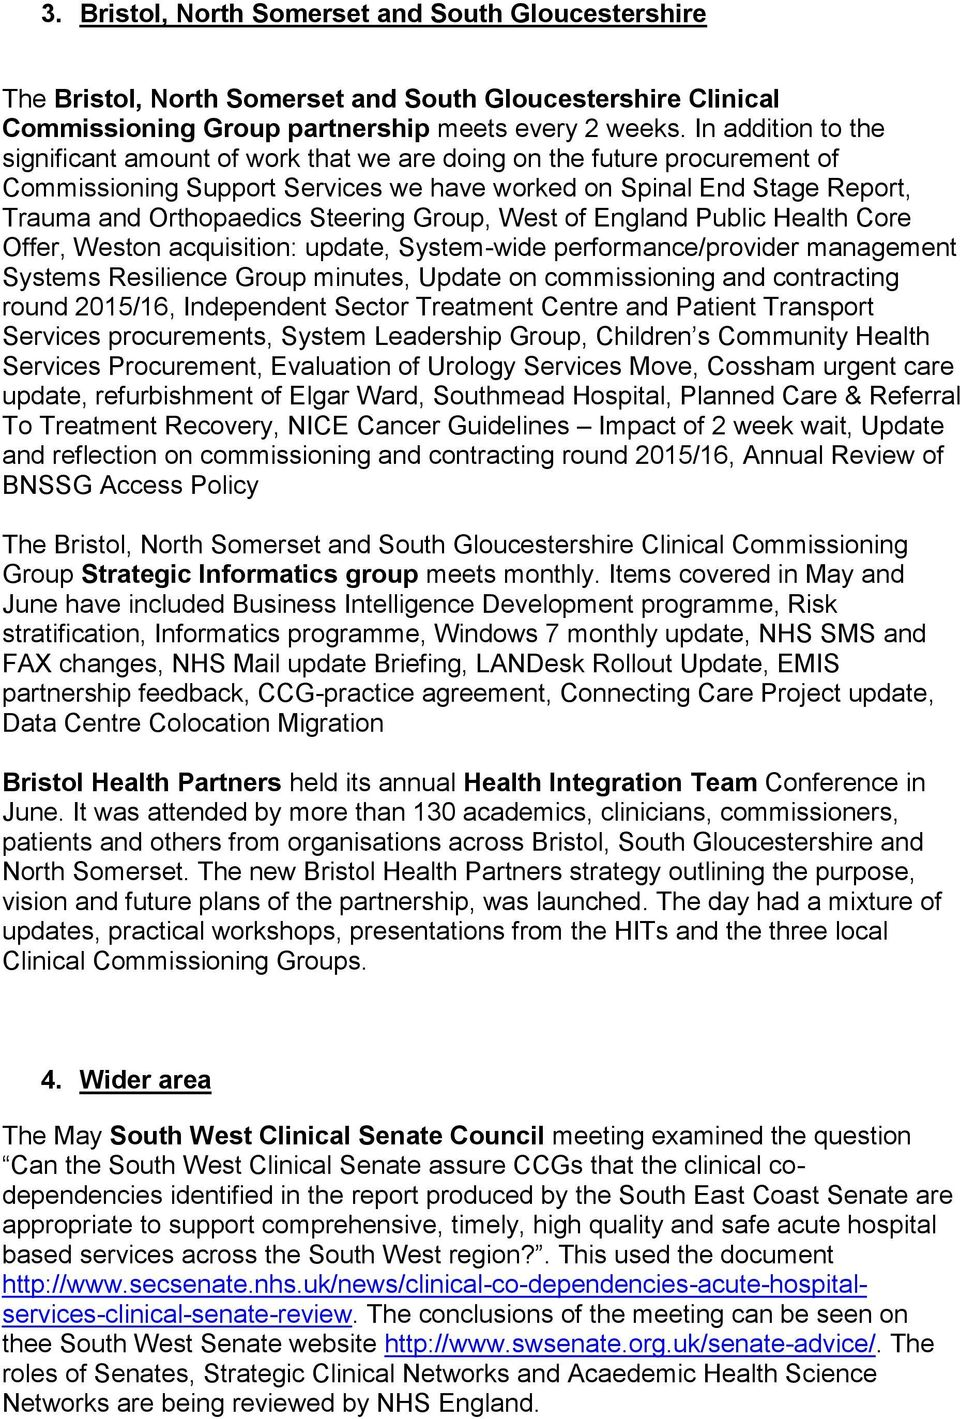 Group, West of England Public Health Core Offer, Weston acquisition: update, System-wide performance/provider management Systems Resilience Group minutes, Update on commissioning and contracting